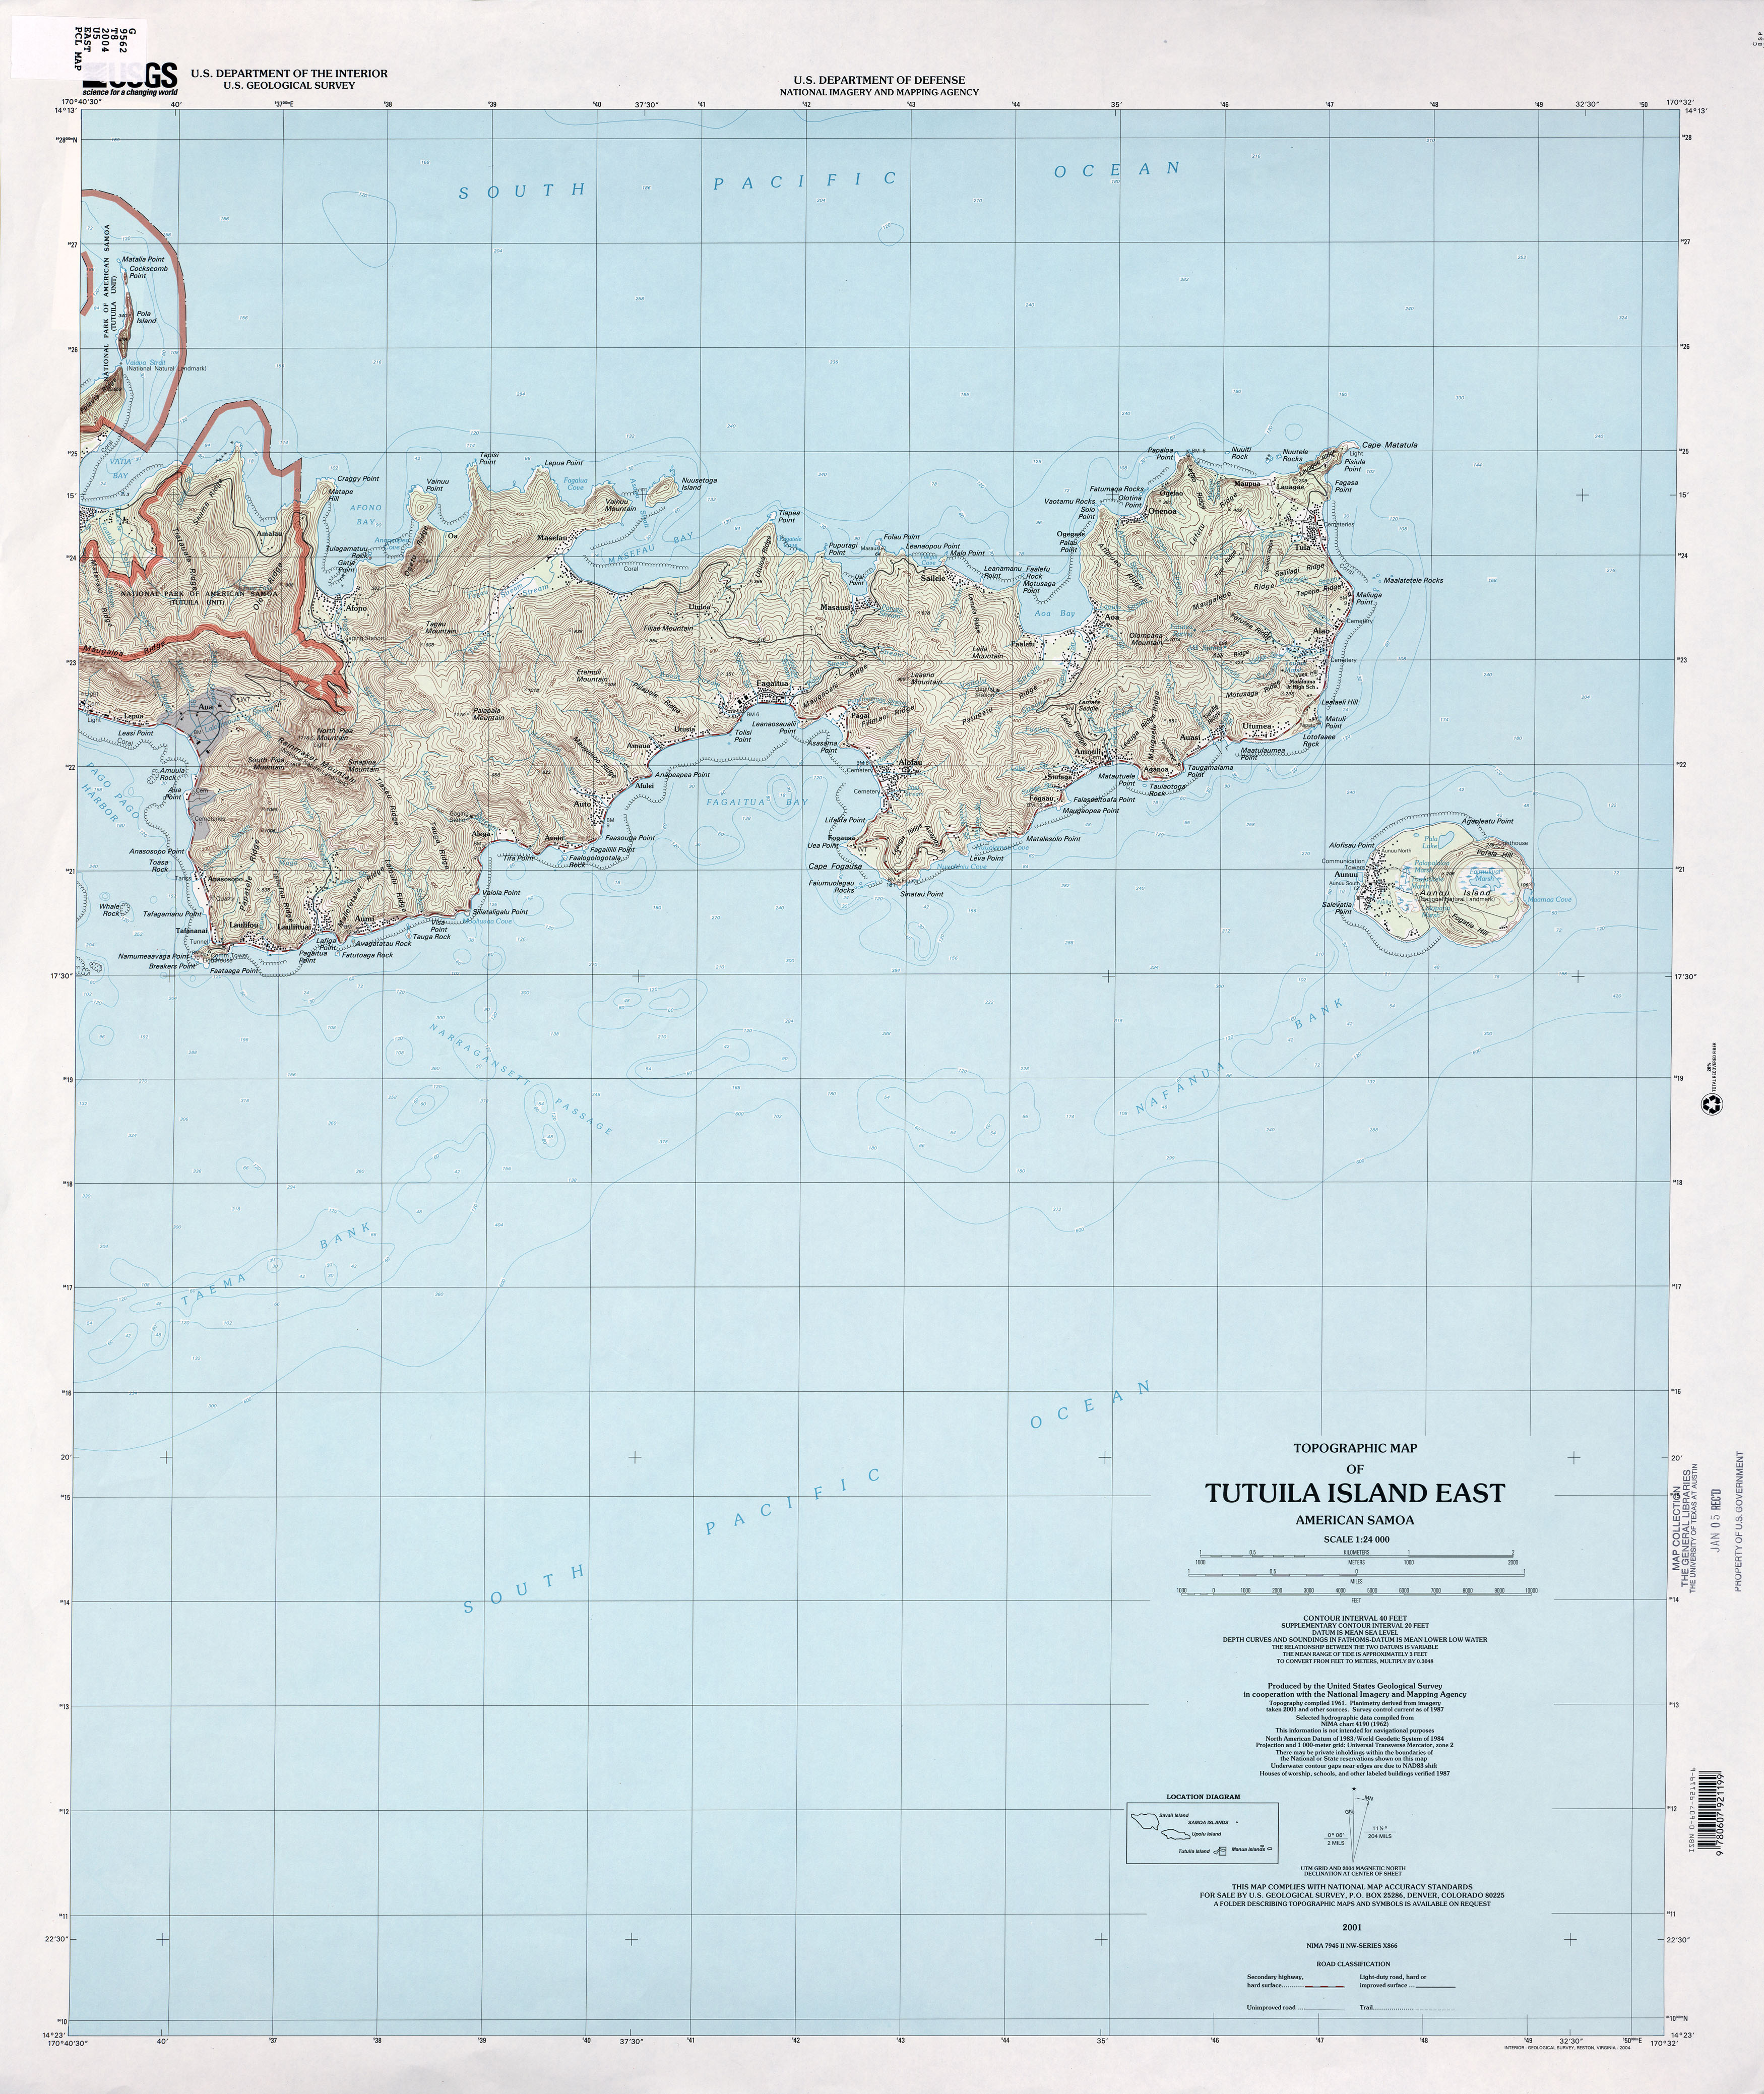 American samoa maps perry castaeda map collection ut library online map american samoa 124000 usgs 2001 25mb gumiabroncs Image collections